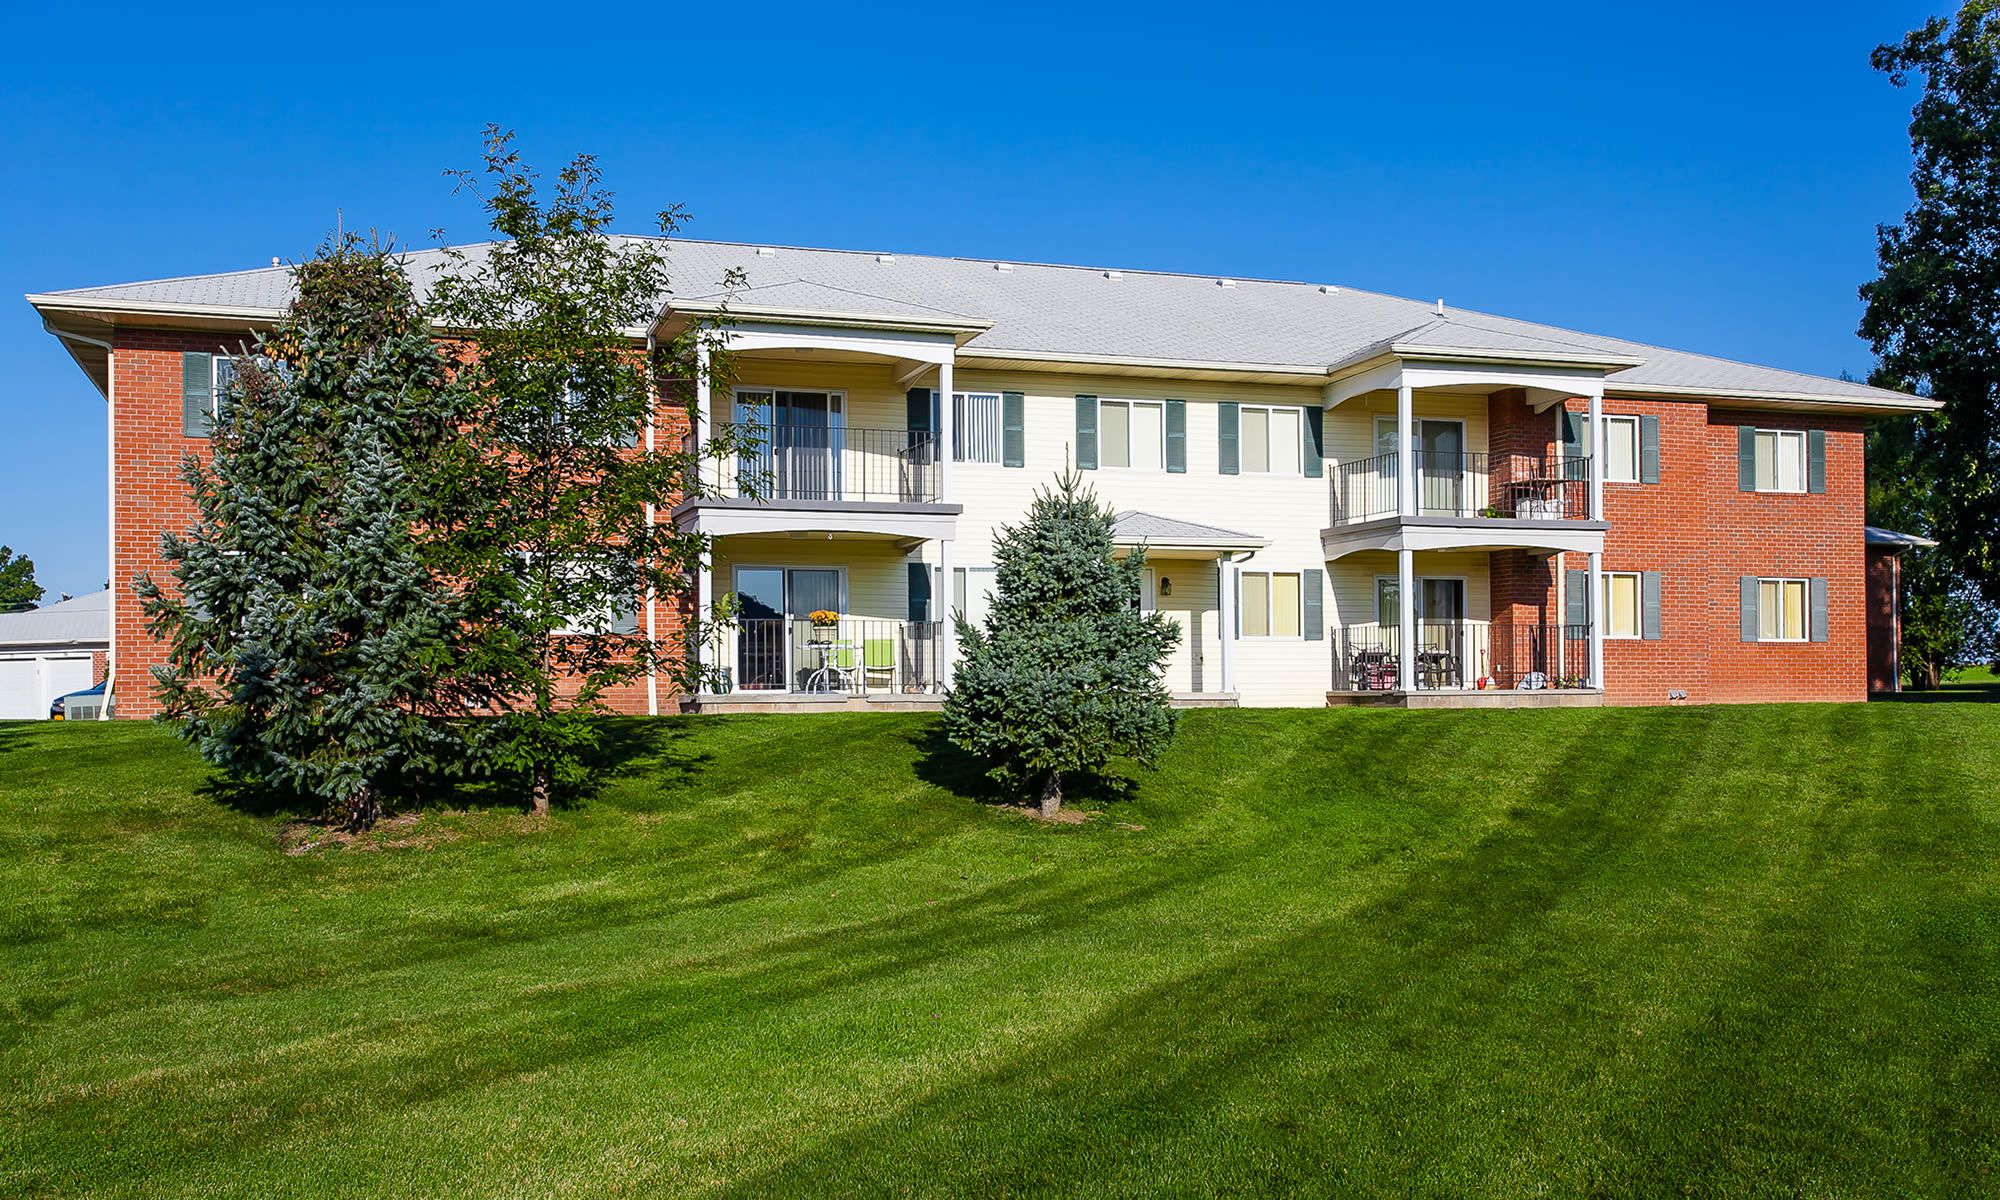 Apartments in Canandaigua, New York